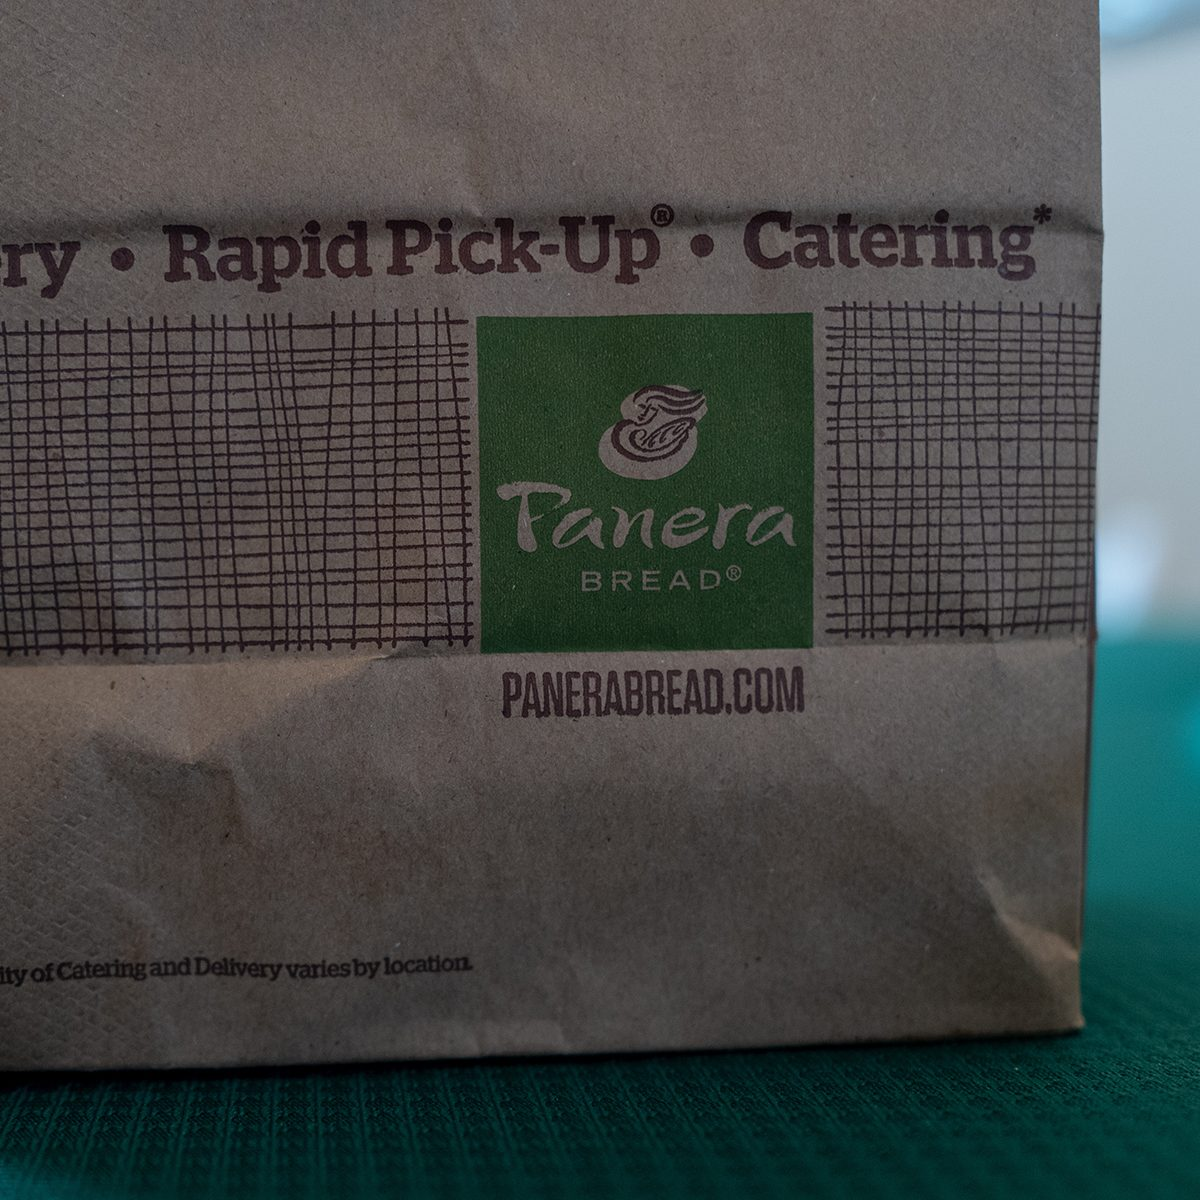 A food delivery order from Panera bread is visible in a suburban home in Contra Costa County, San Ramon, California during an outbreak of the COVID-19 coronavirus, March 16, 2020. Amid the outbreak, many residents have turned to food delivery services as a way to obtain meals, as restaurants have been ordered to close their dining rooms. (Photo by Smith Collection/Gado/Getty Images)